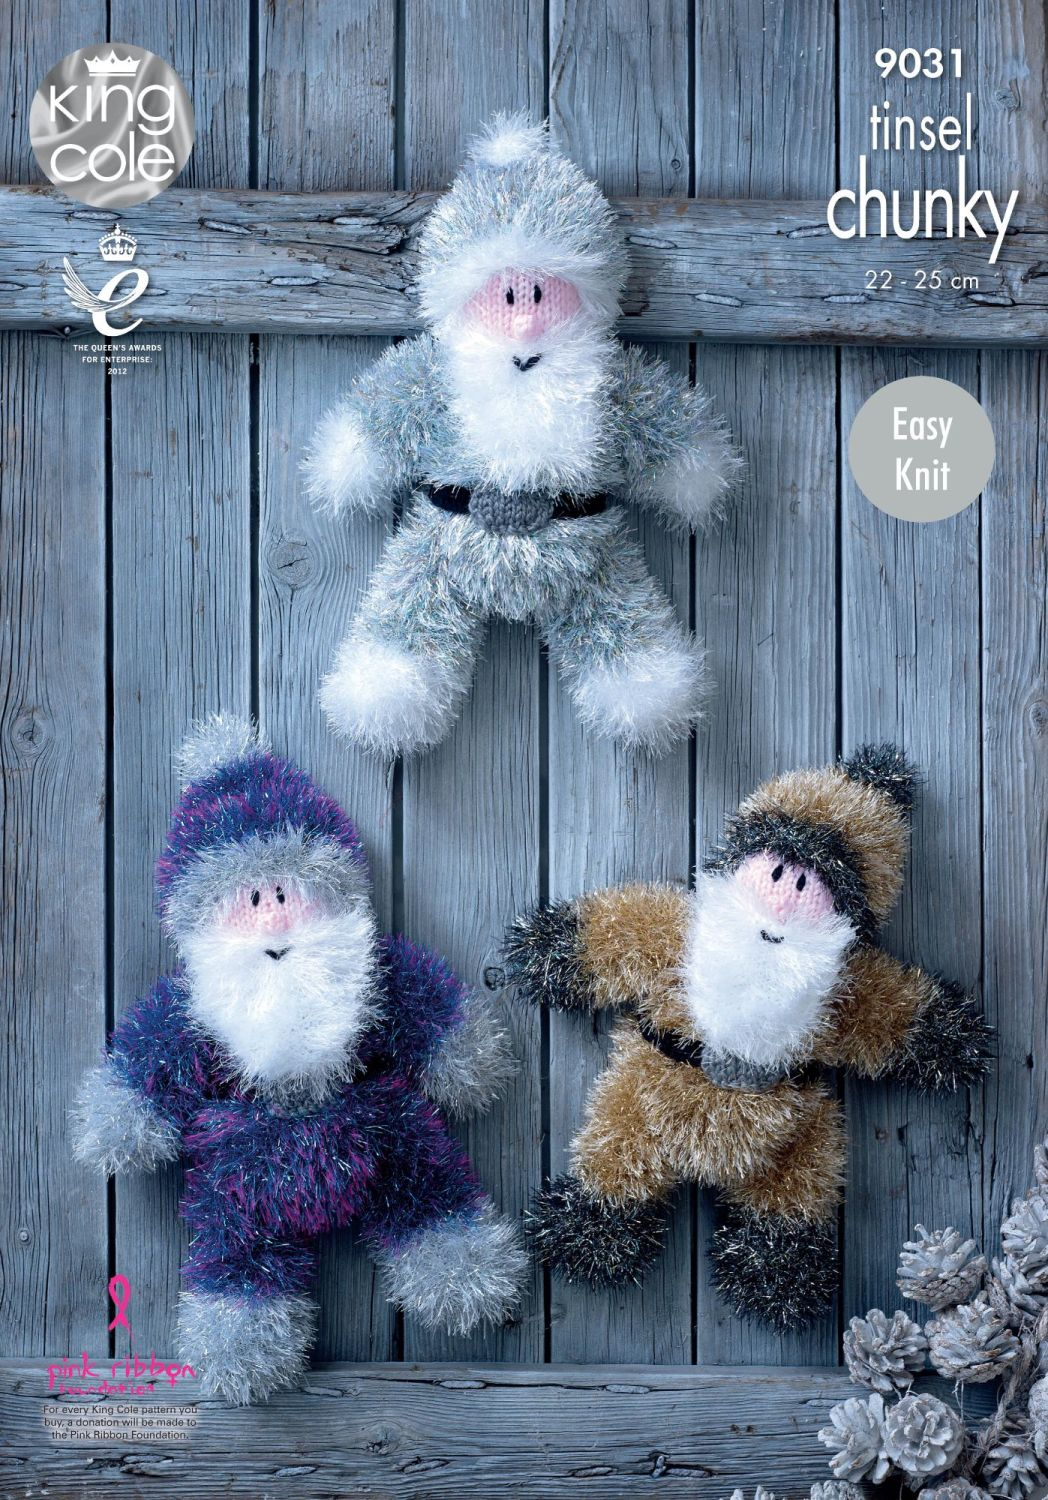 9031 Knitting Pattern - Tinsel Chunky Father Christmas (Easy Knit)